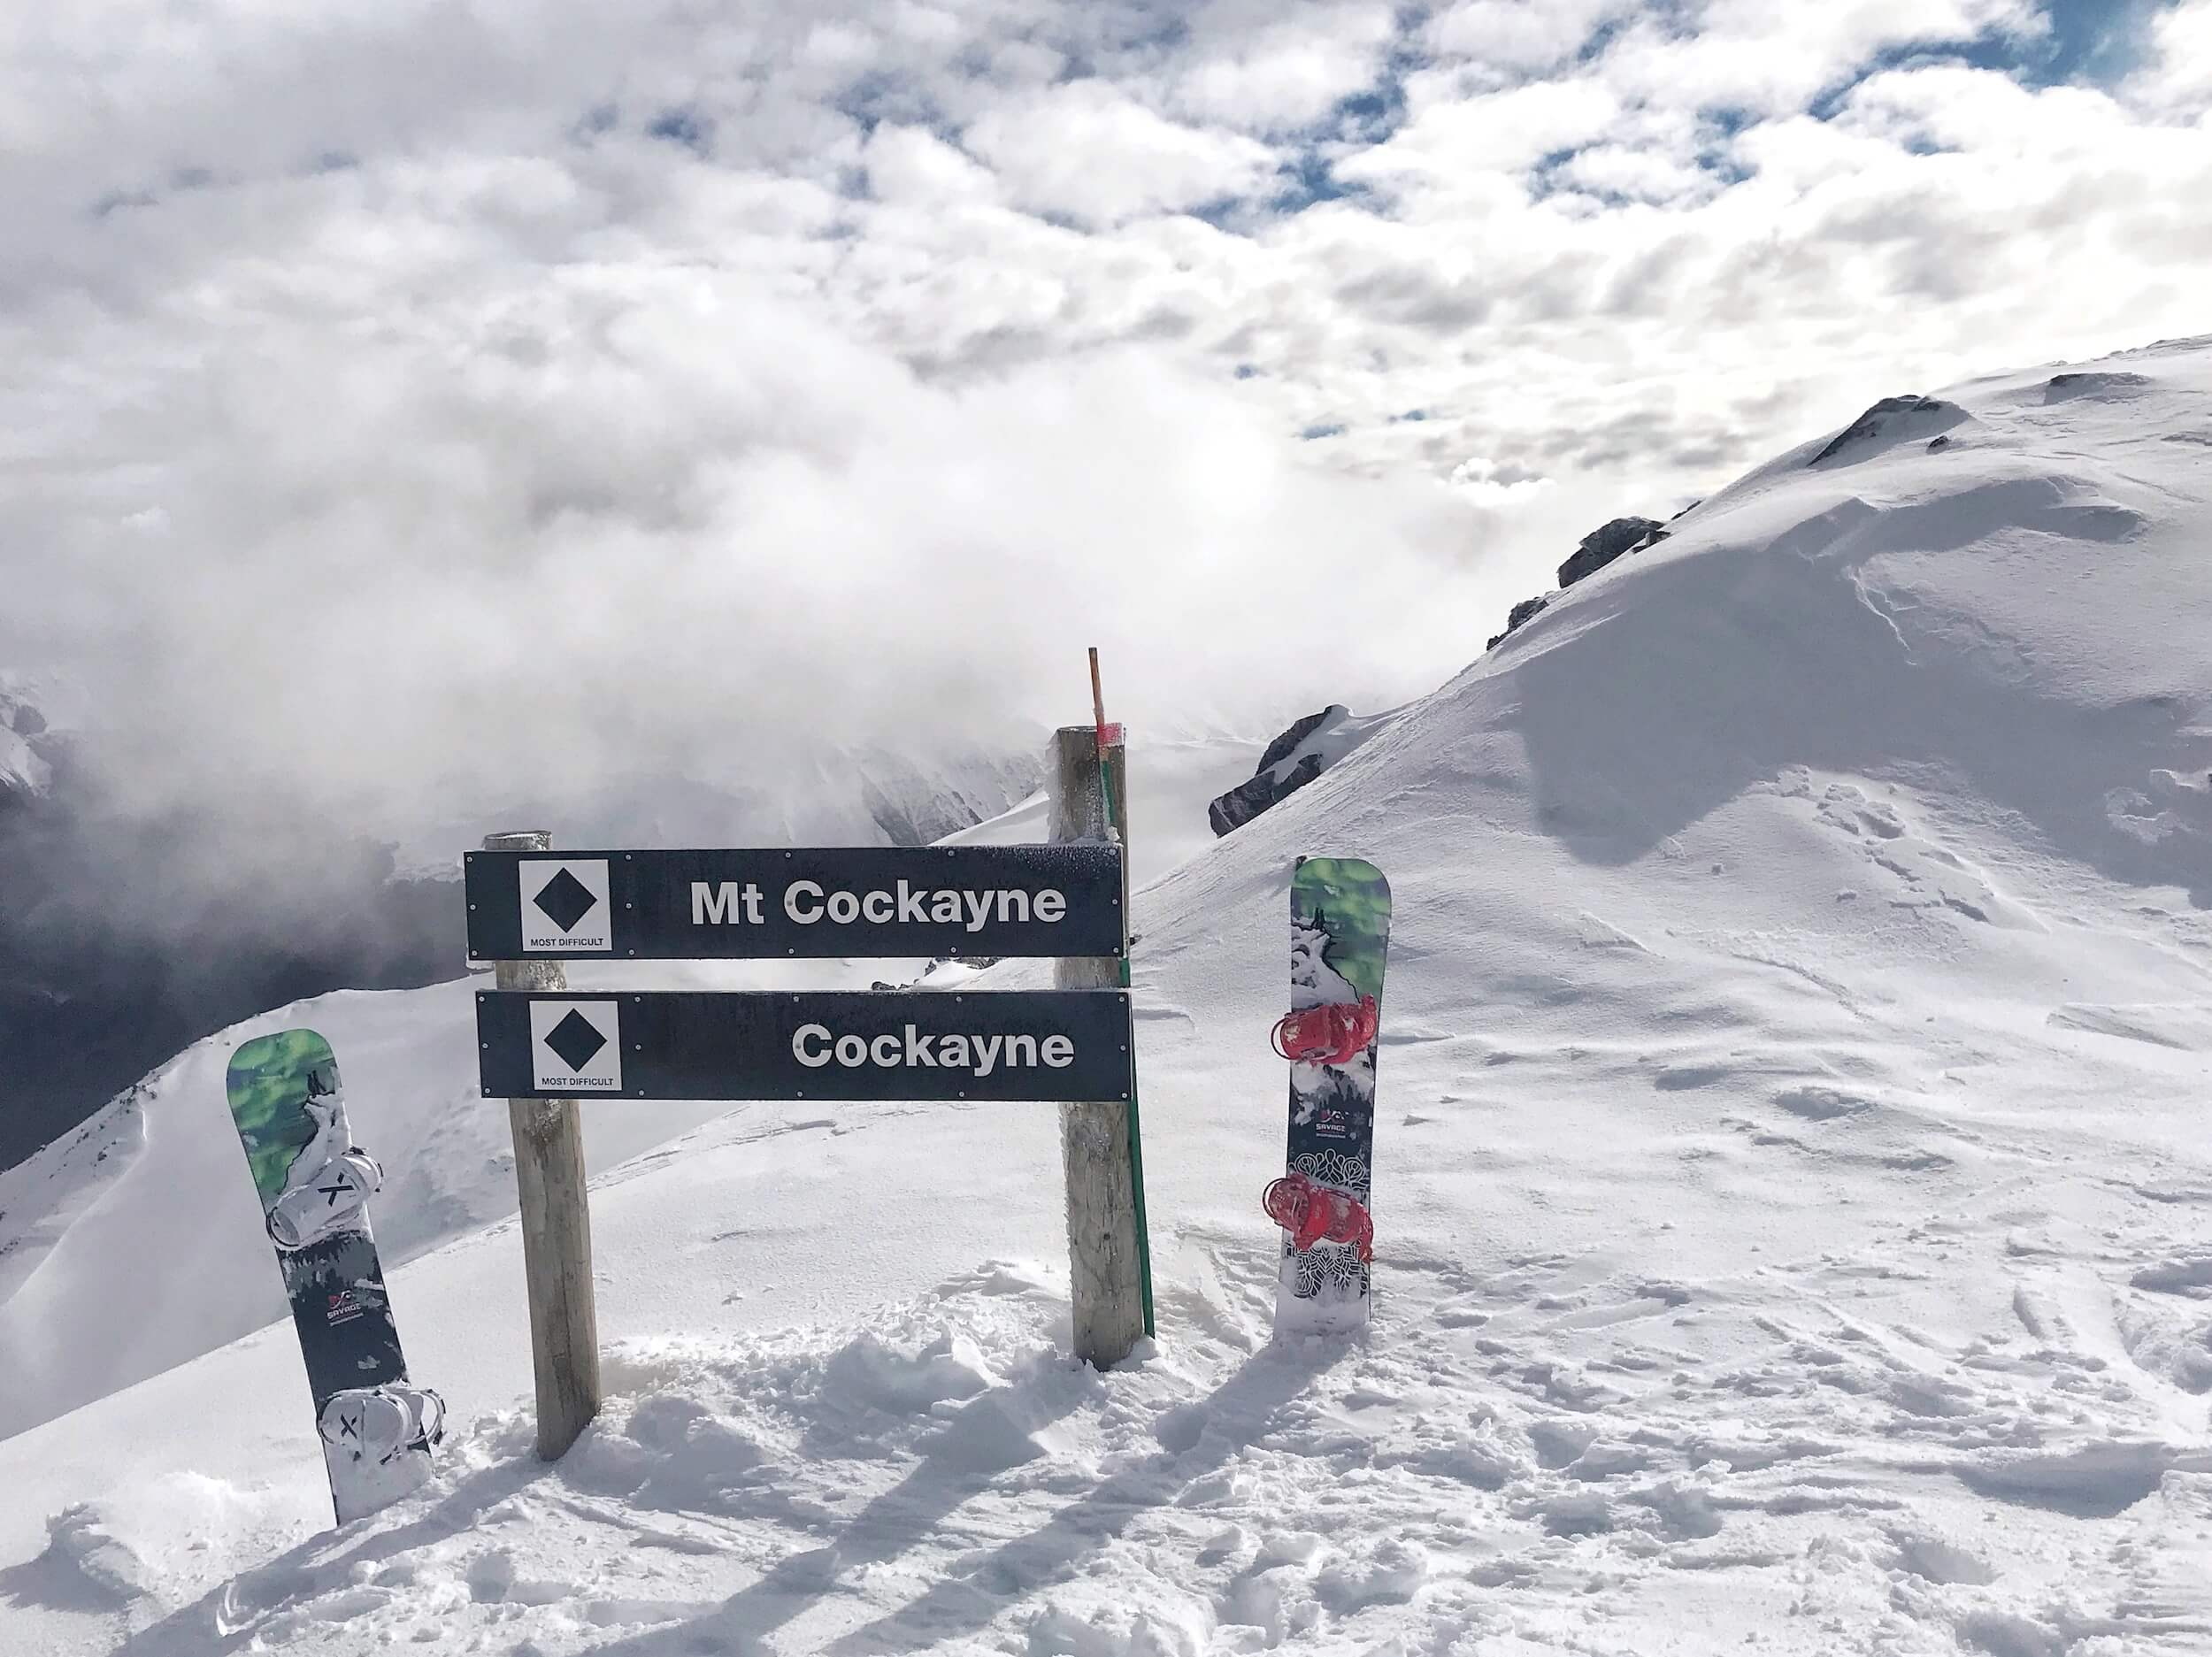 THIS POINT IS ACCESSED VIA A 60 SECOND WALK FROM THE TOP OF THE RIDGE T-BAR.